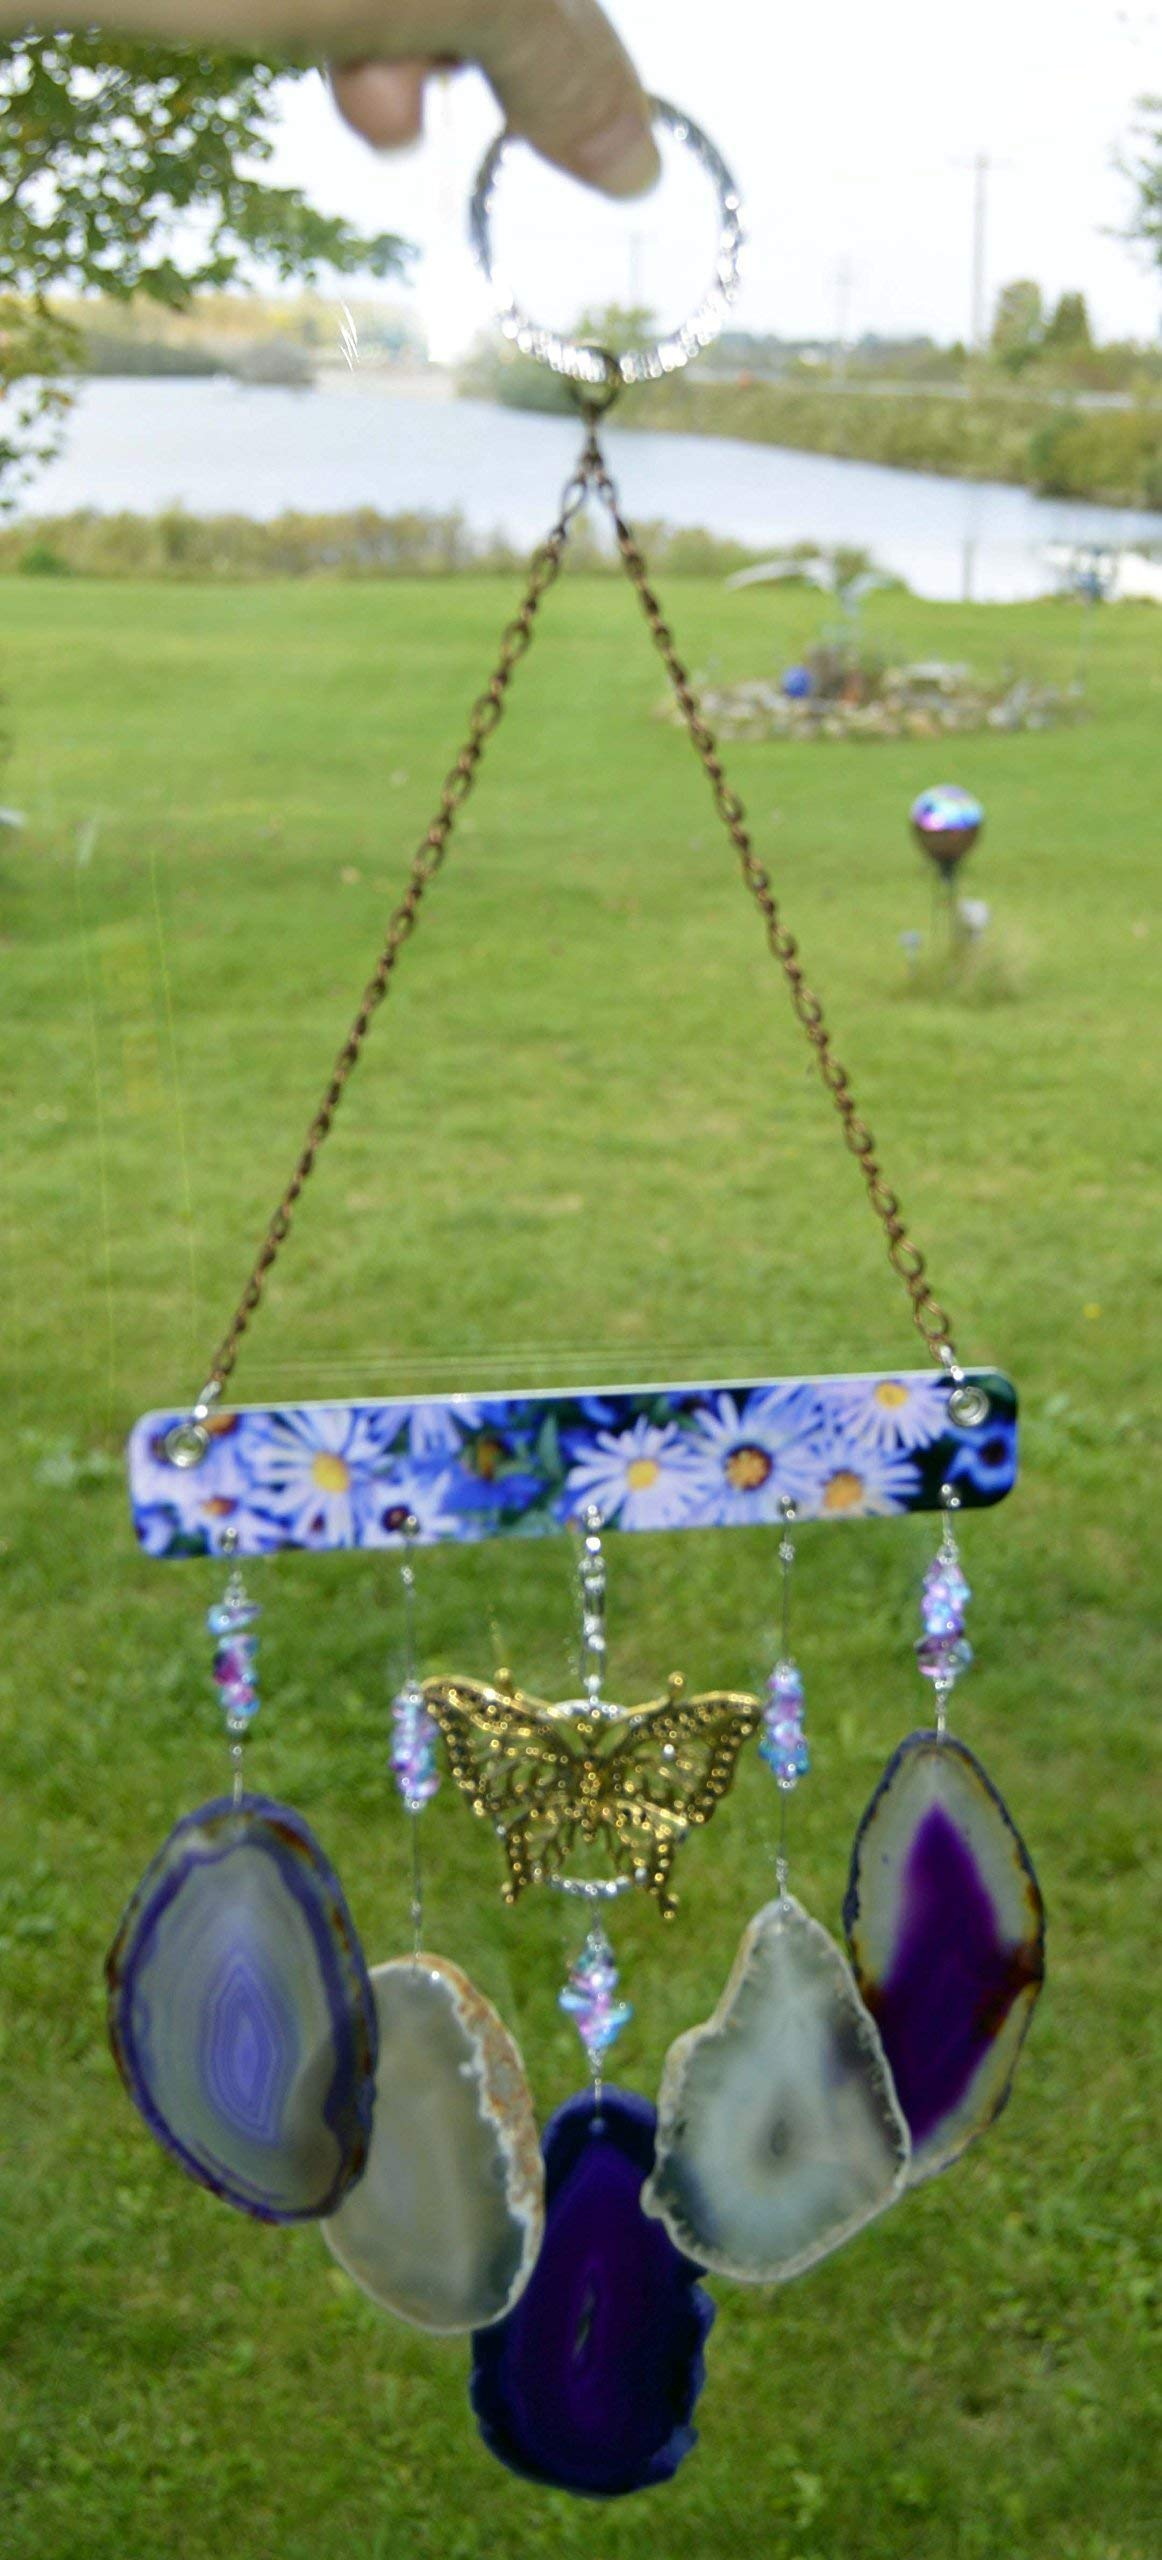 wind chime Agate geode windchime deep purple and light amber/gray tone stone sun catcher wind chime mobile window decor hanging beautiful golden butterfly